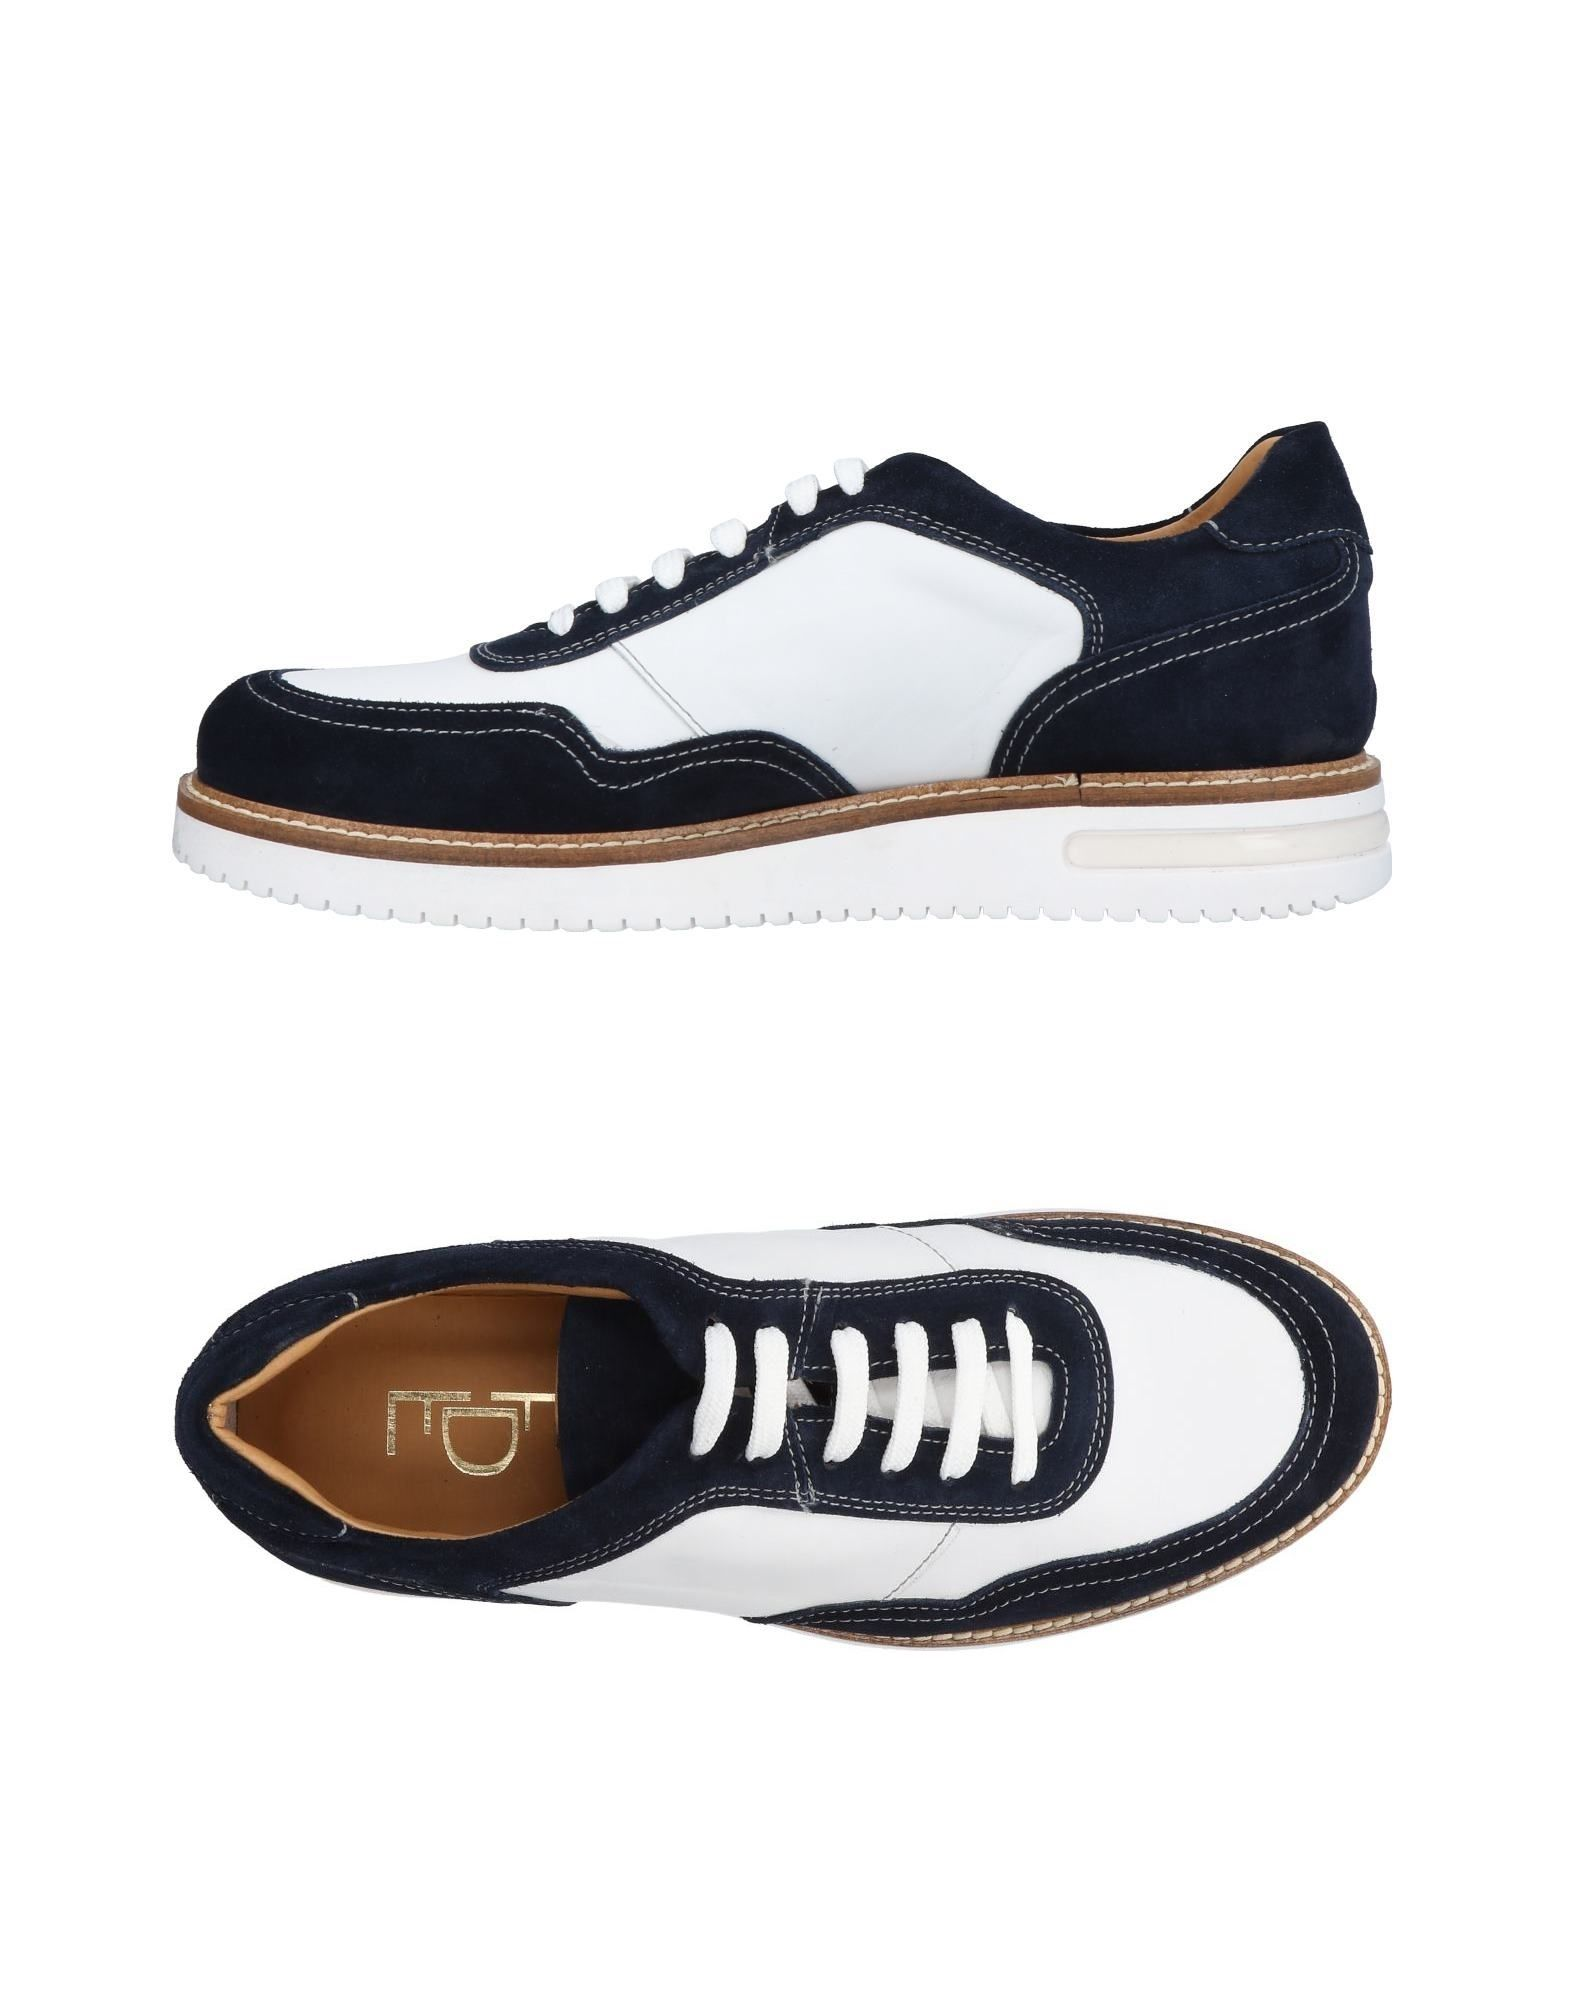 Sneakers Fdf Shoes Uomo - 11420850LQ